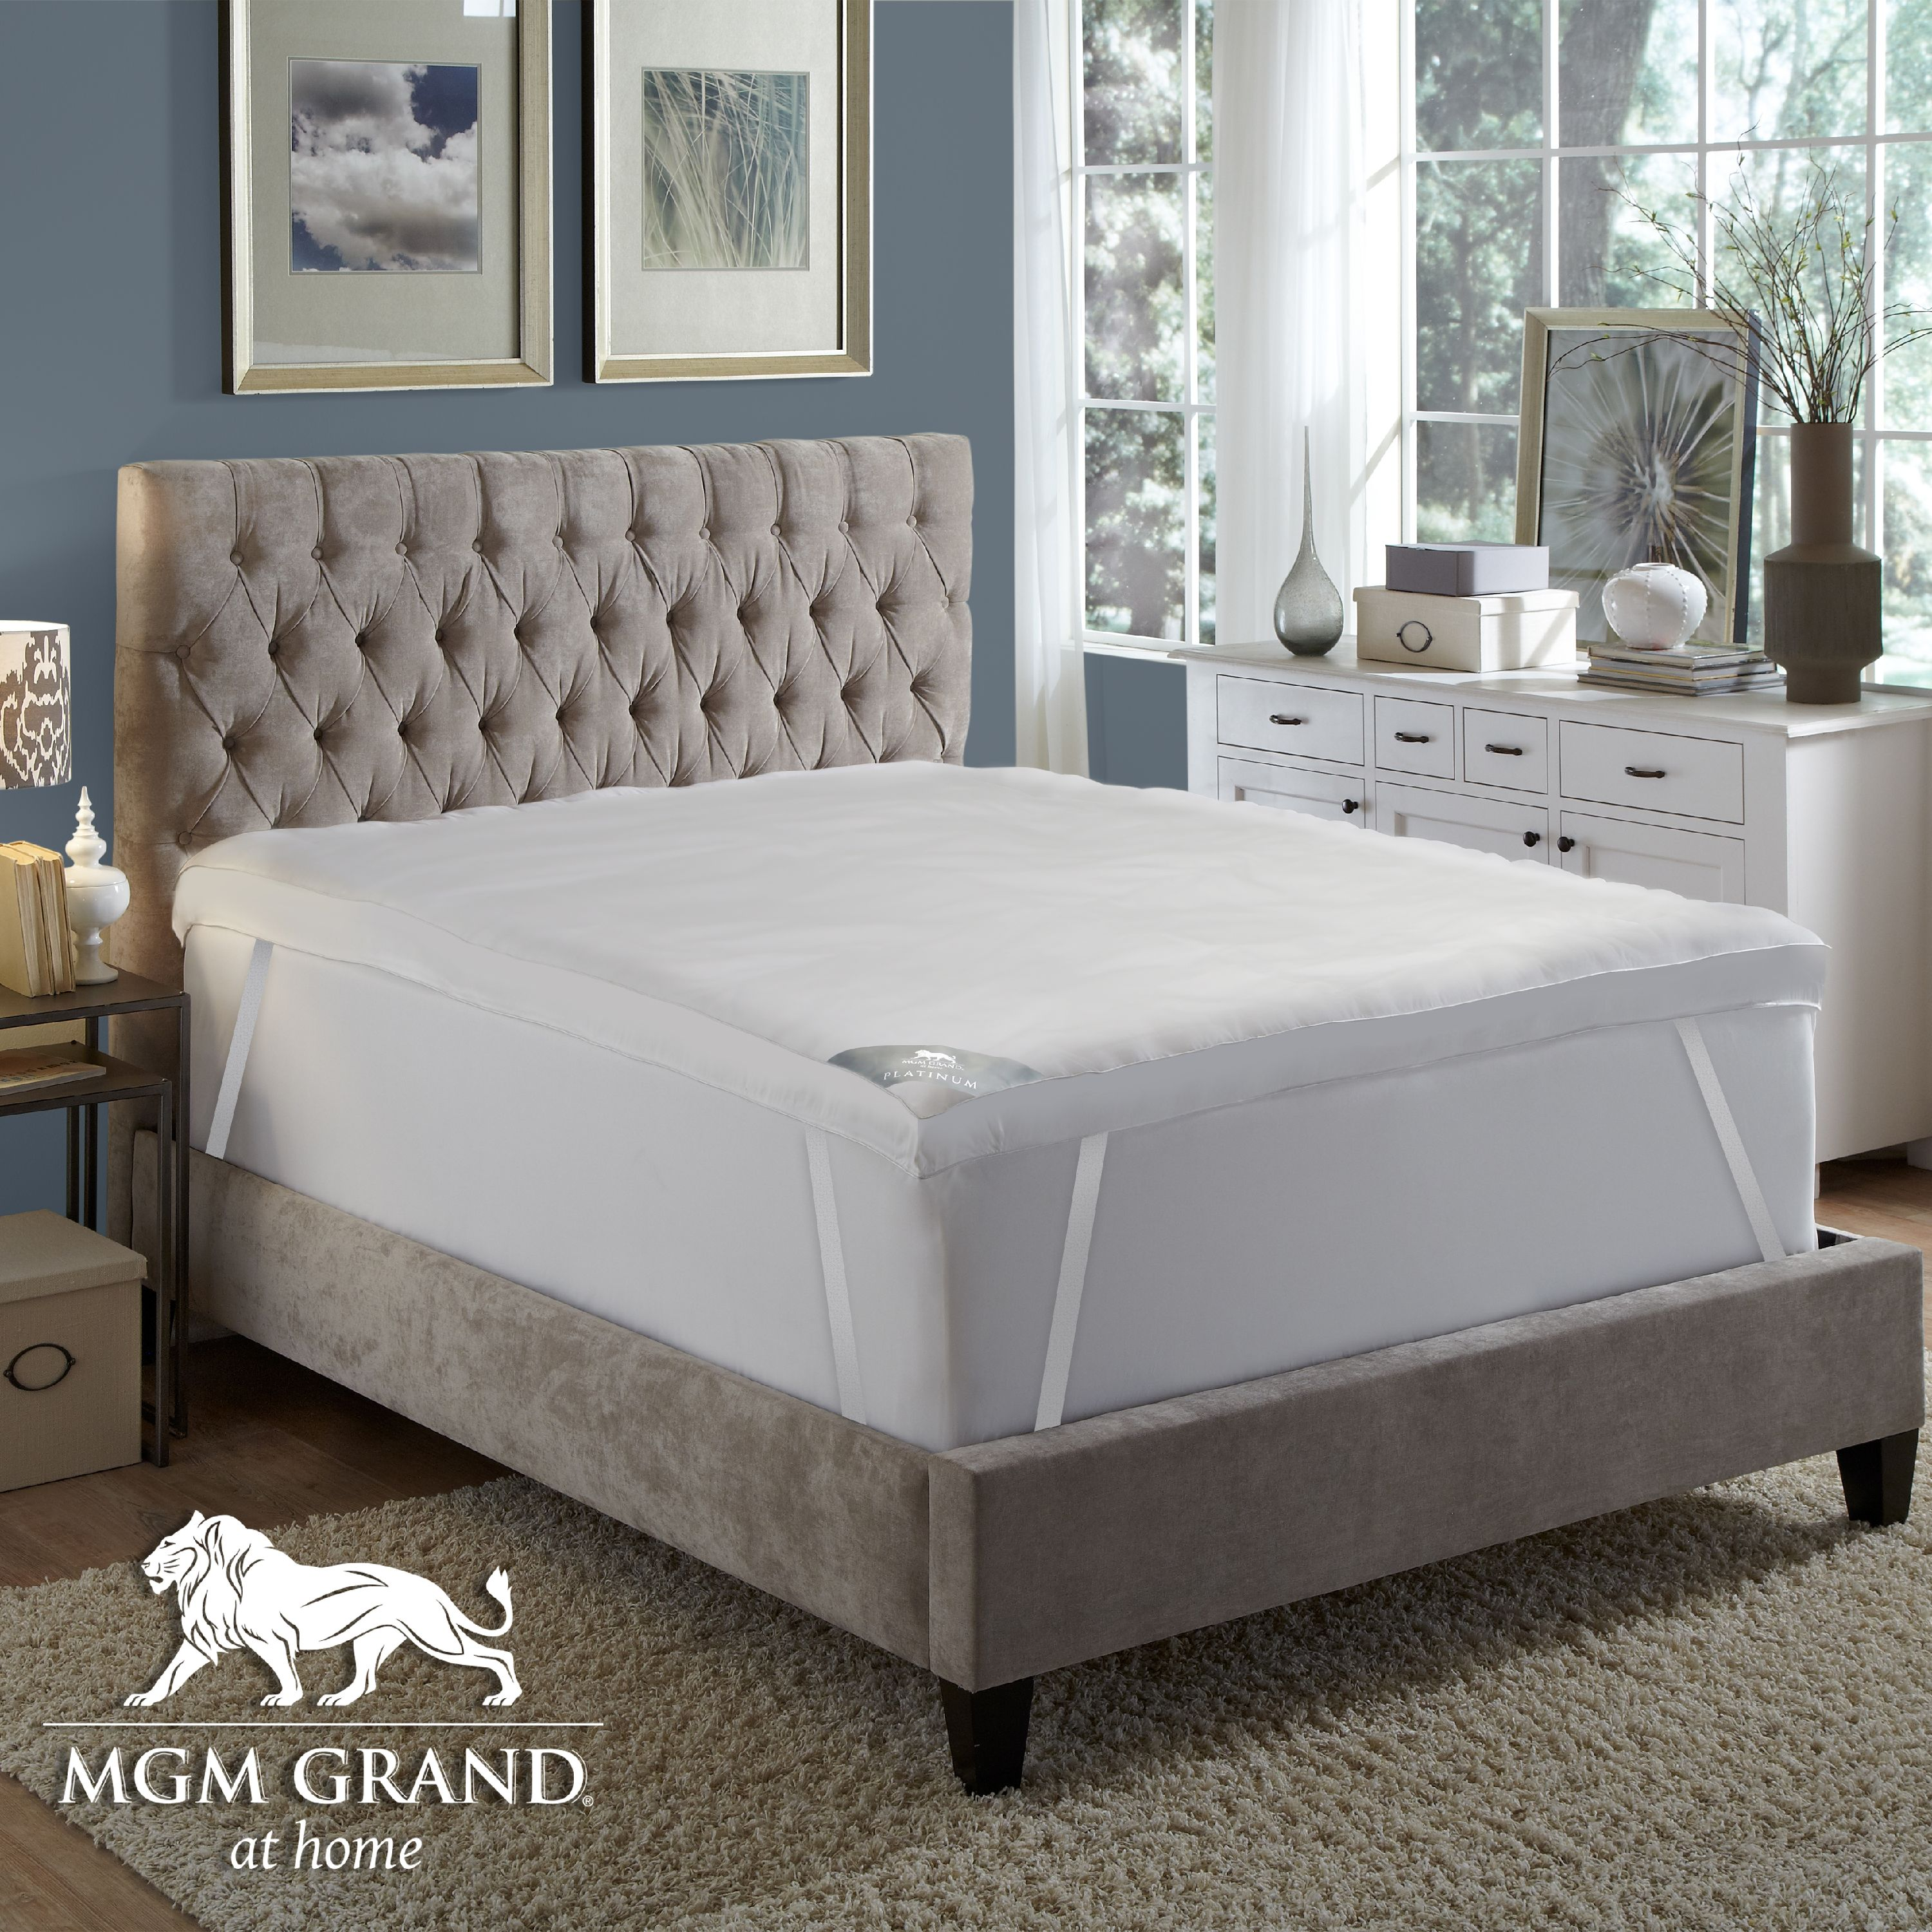 "MGM GRAND at home Platinum Collection 5"" Featherbed Queen"